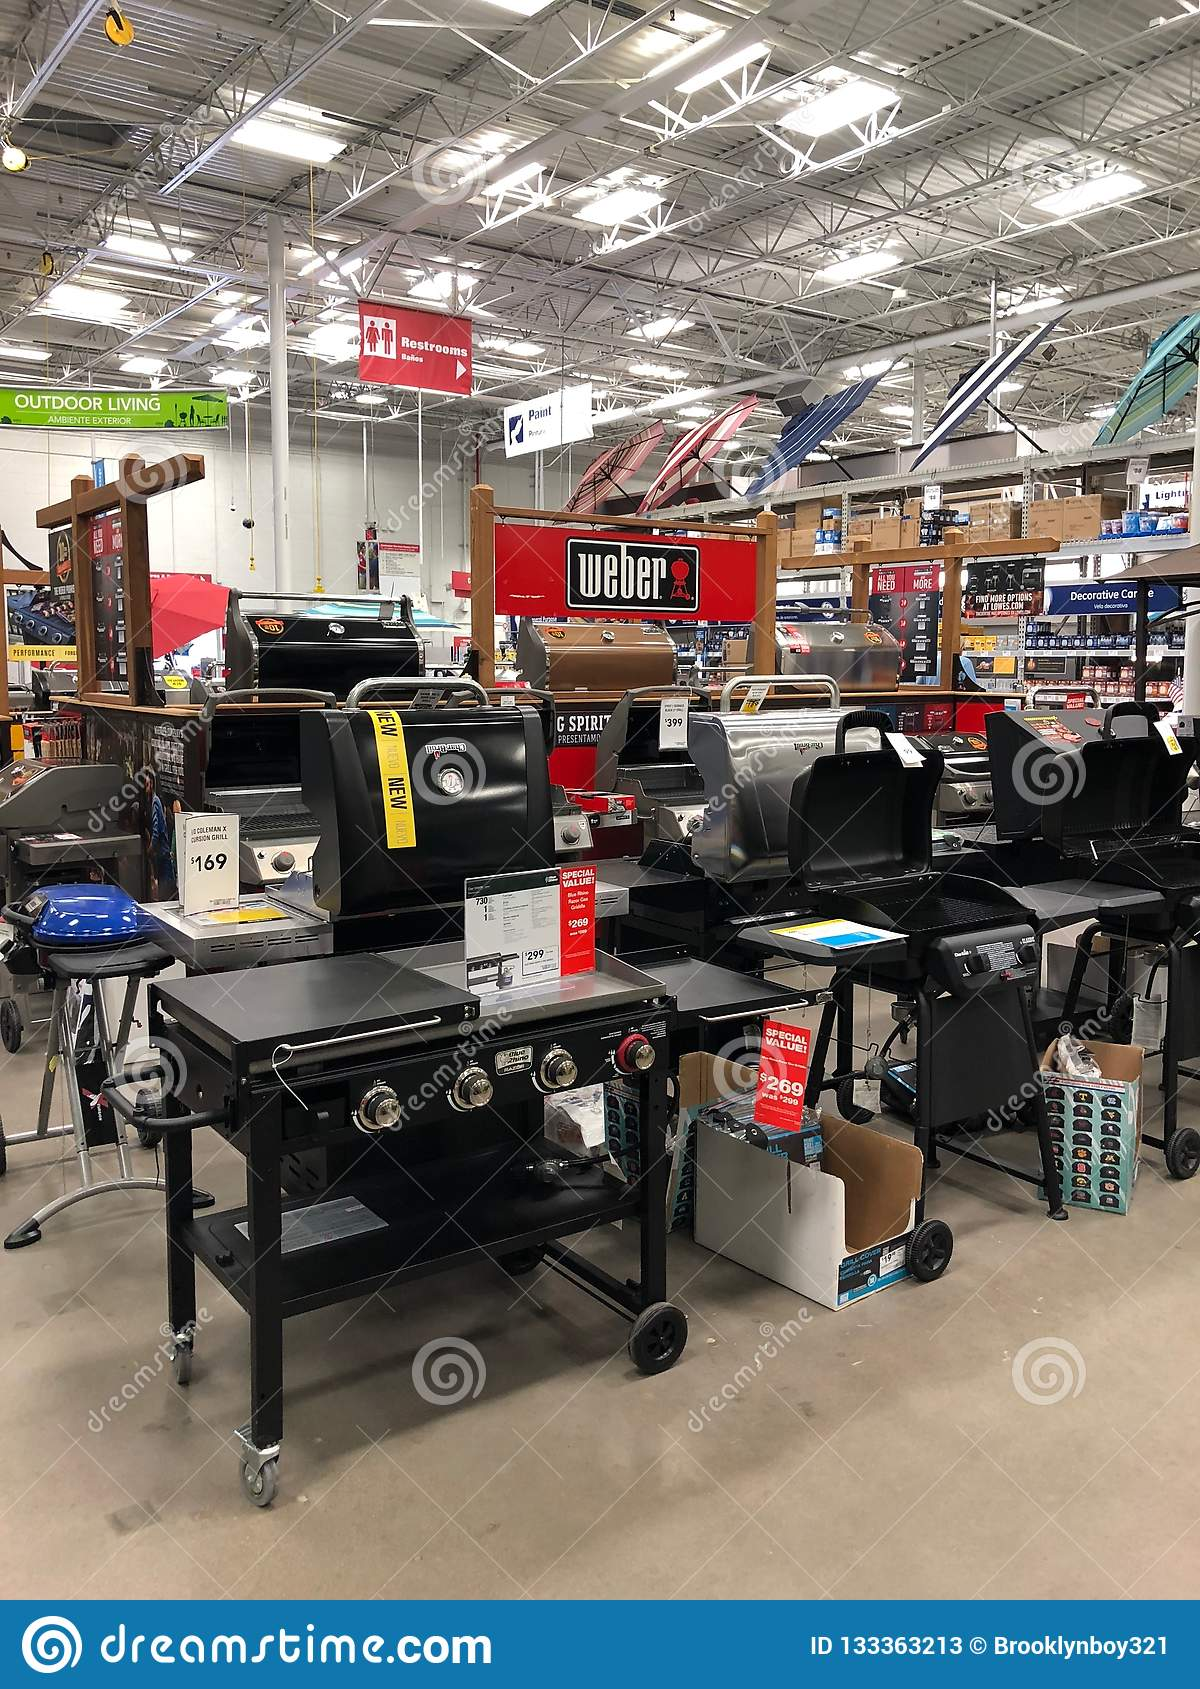 Lowes Home Improvement Store Editorial Stock Photo Image Of Design Department 133363213